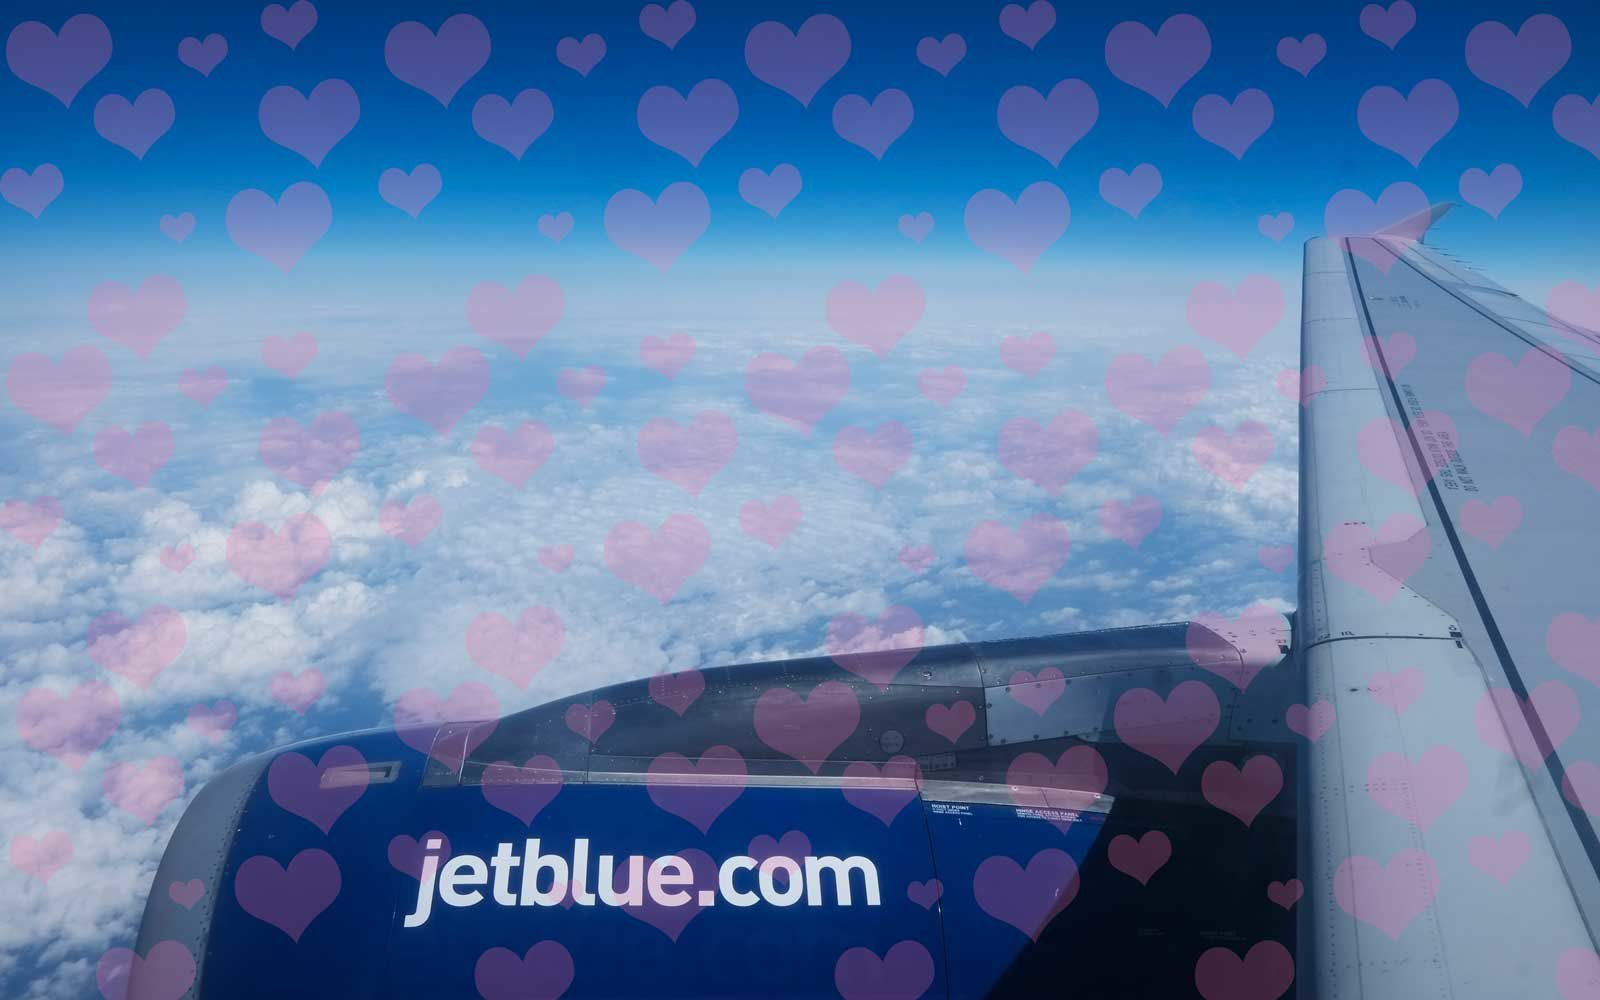 JetBlue Is Selling 39 Flights For Valentines Day